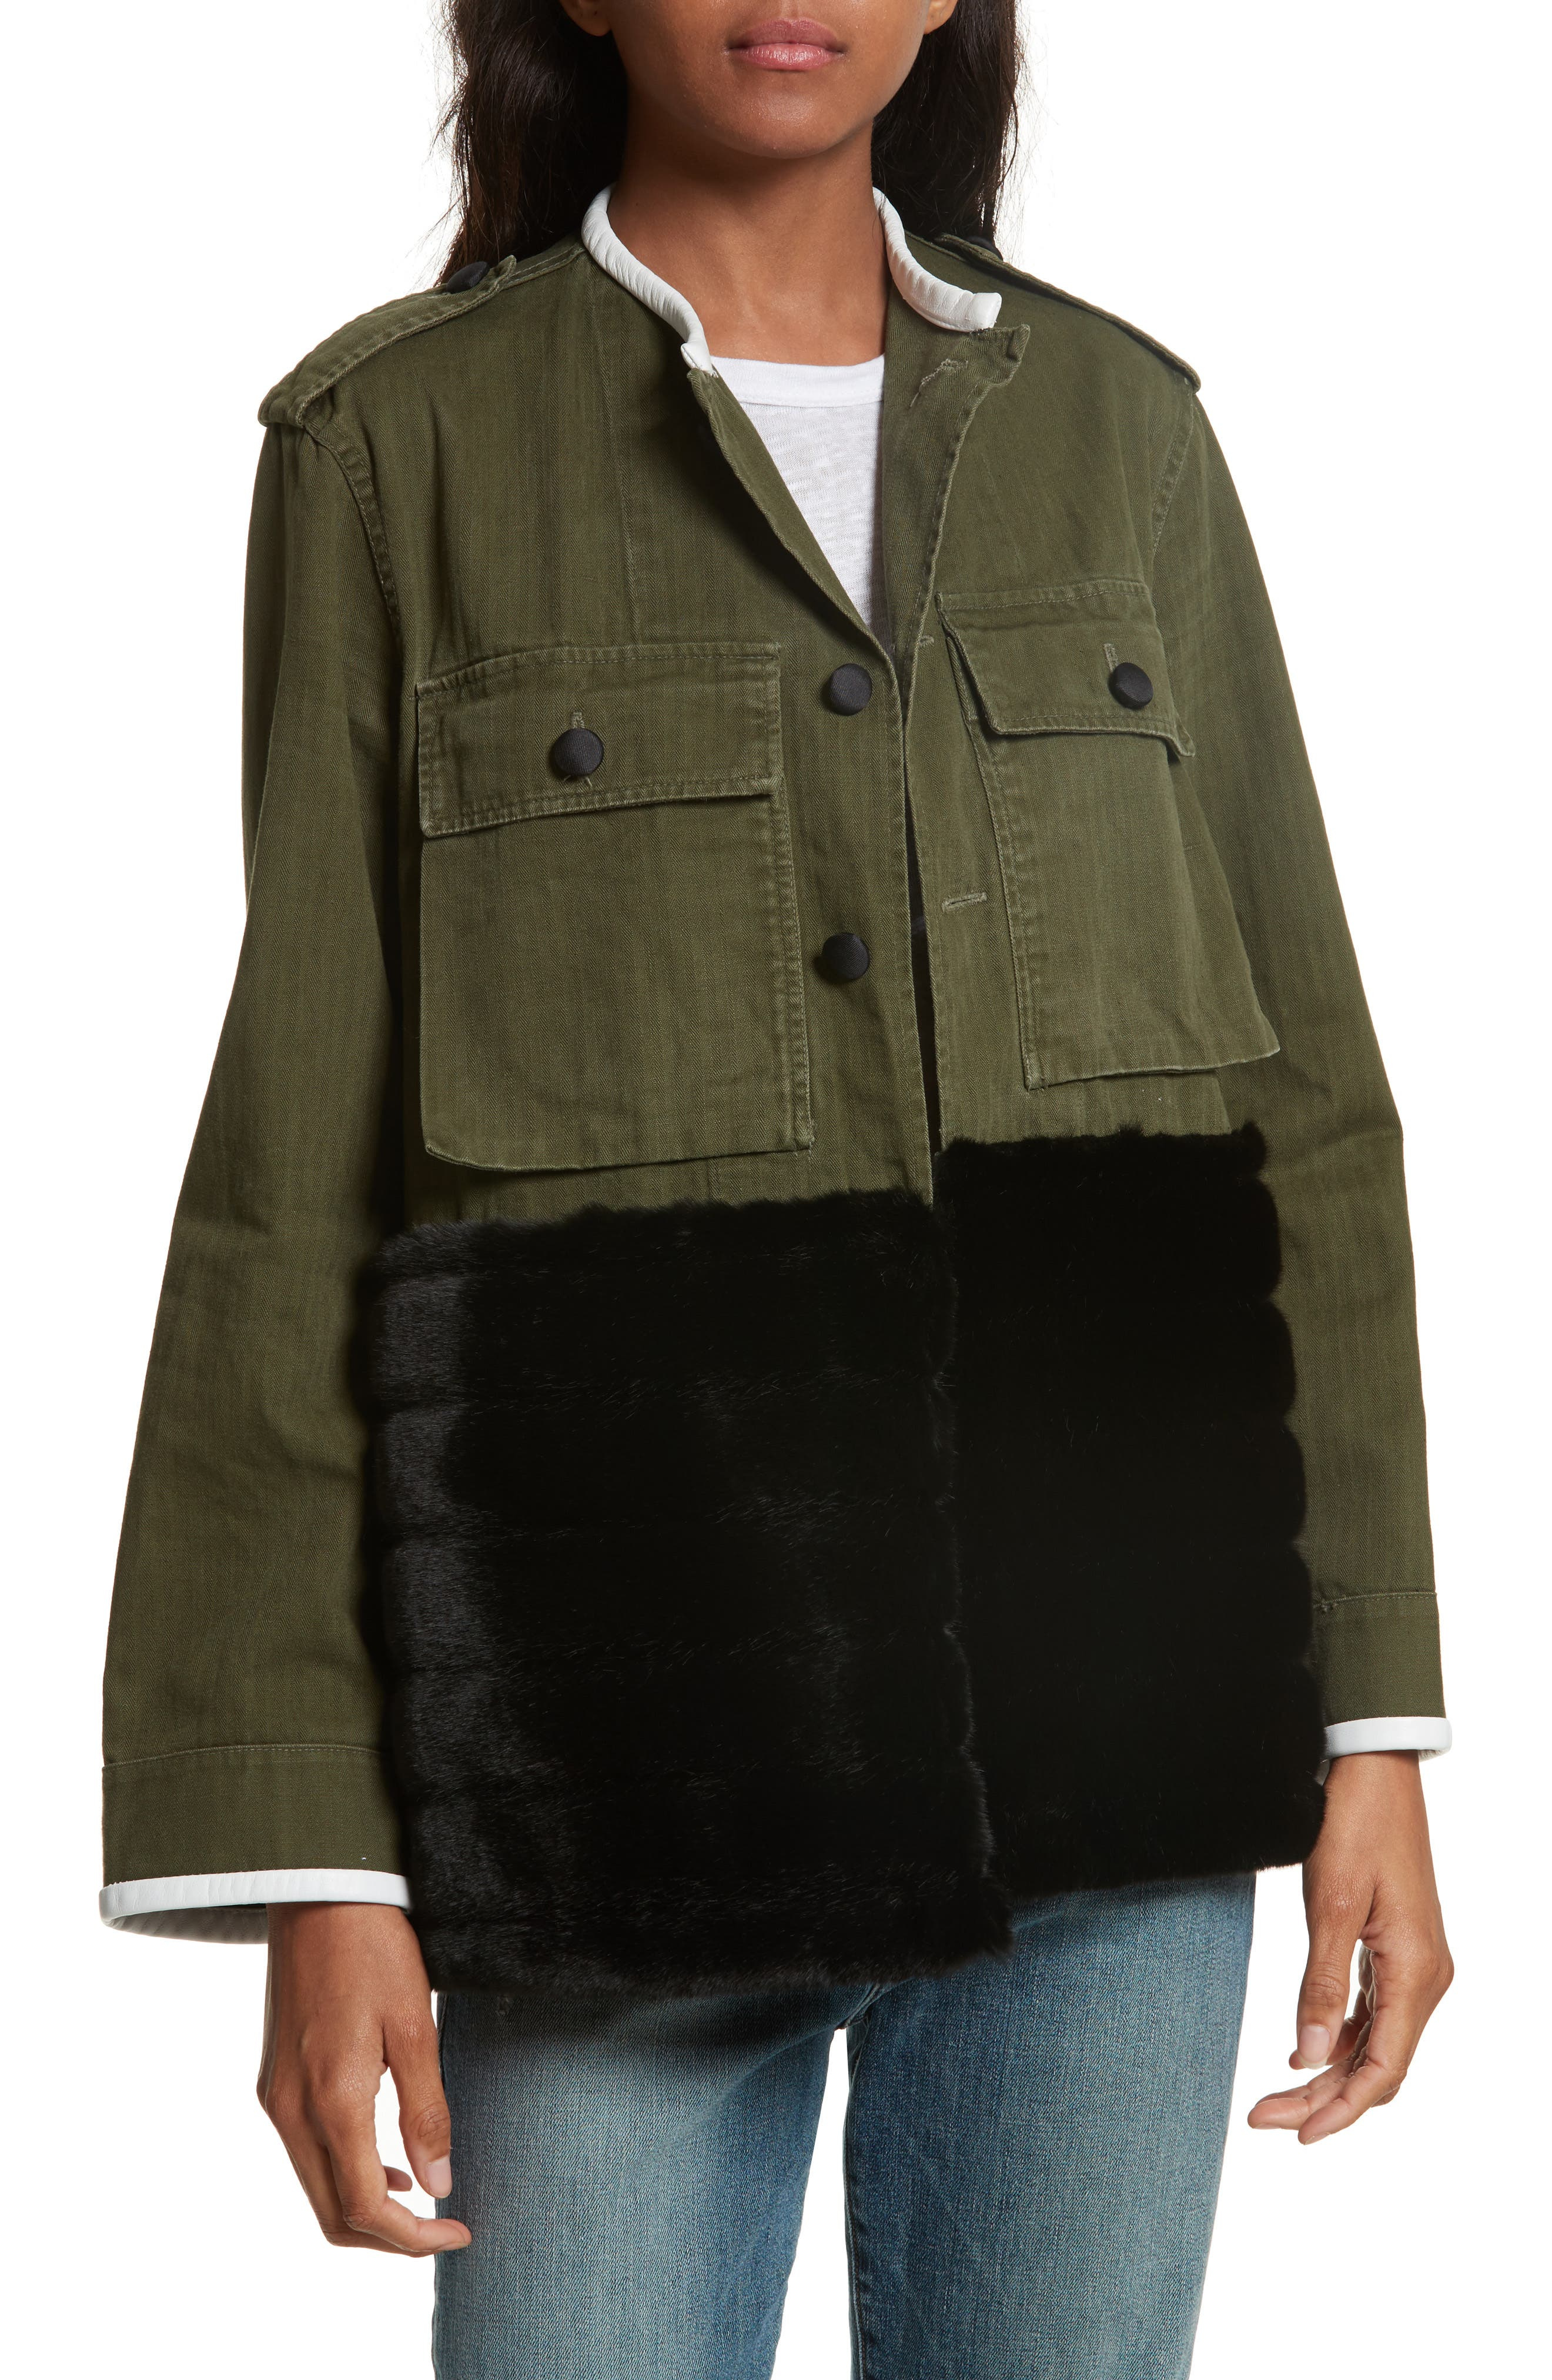 Alternate Image 1 Selected - Harvey Faircloth Vintage Army Jacket with Faux Fur Trim